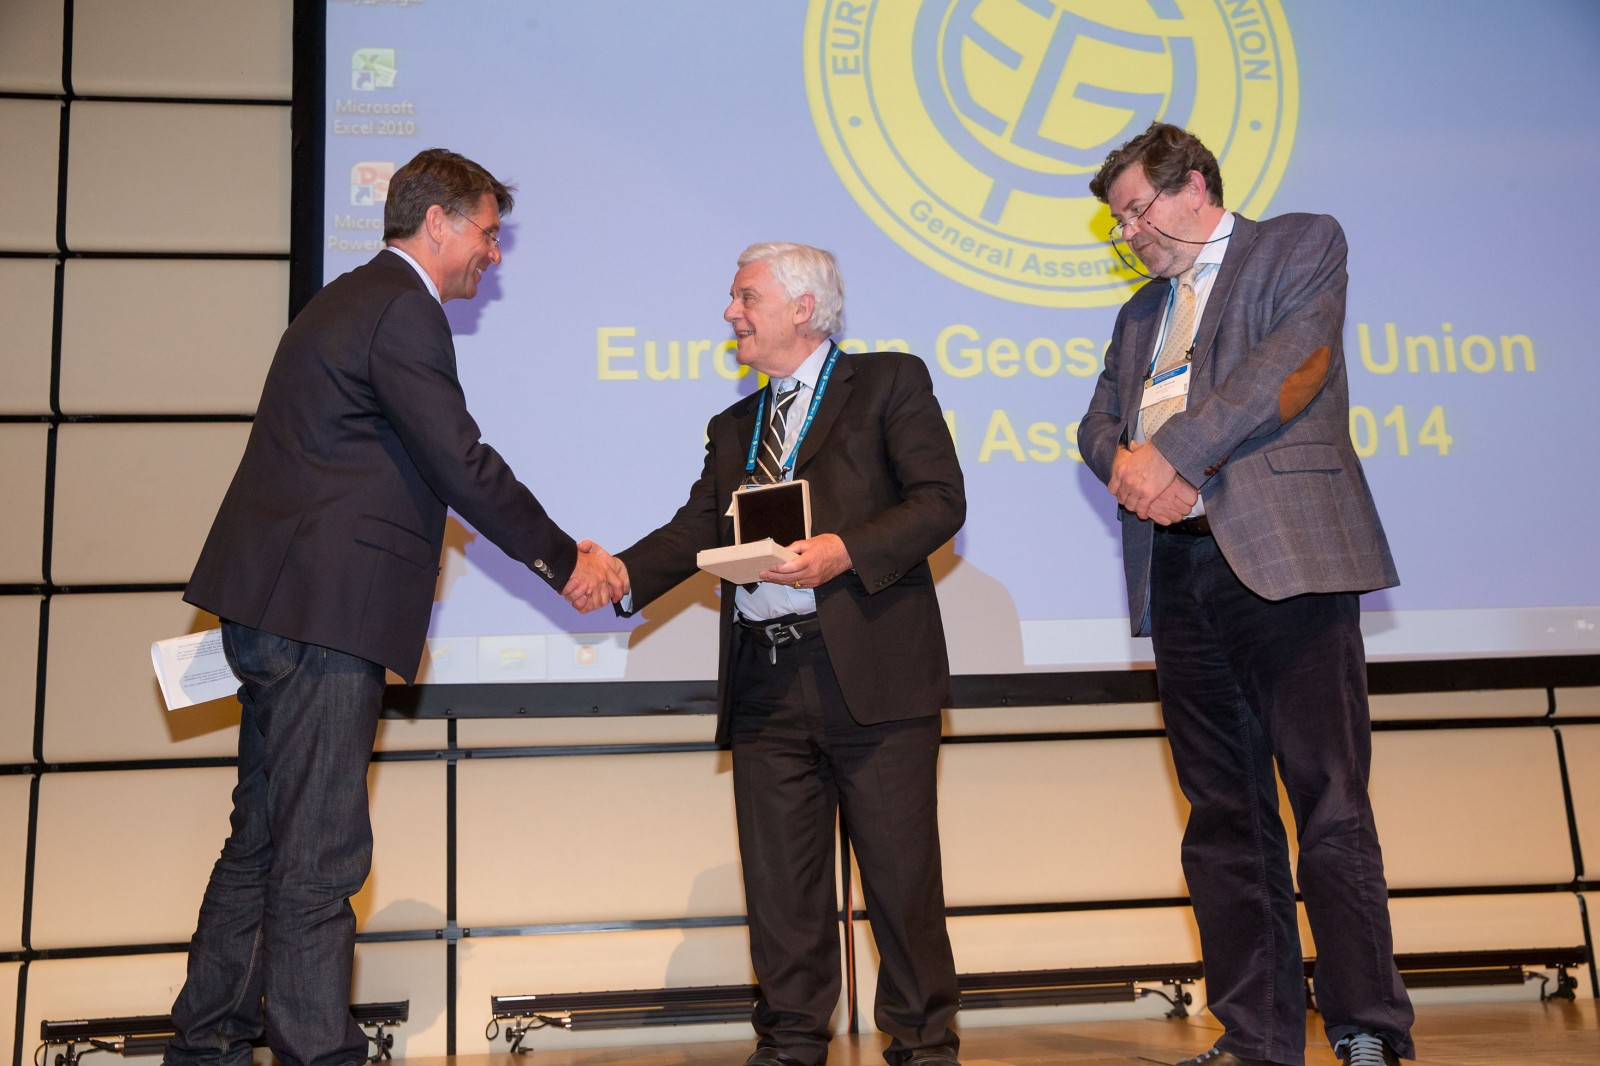 Rob van der Voo is awarded the Petrus Peregrinus Medal at the 2014 General Assembly.